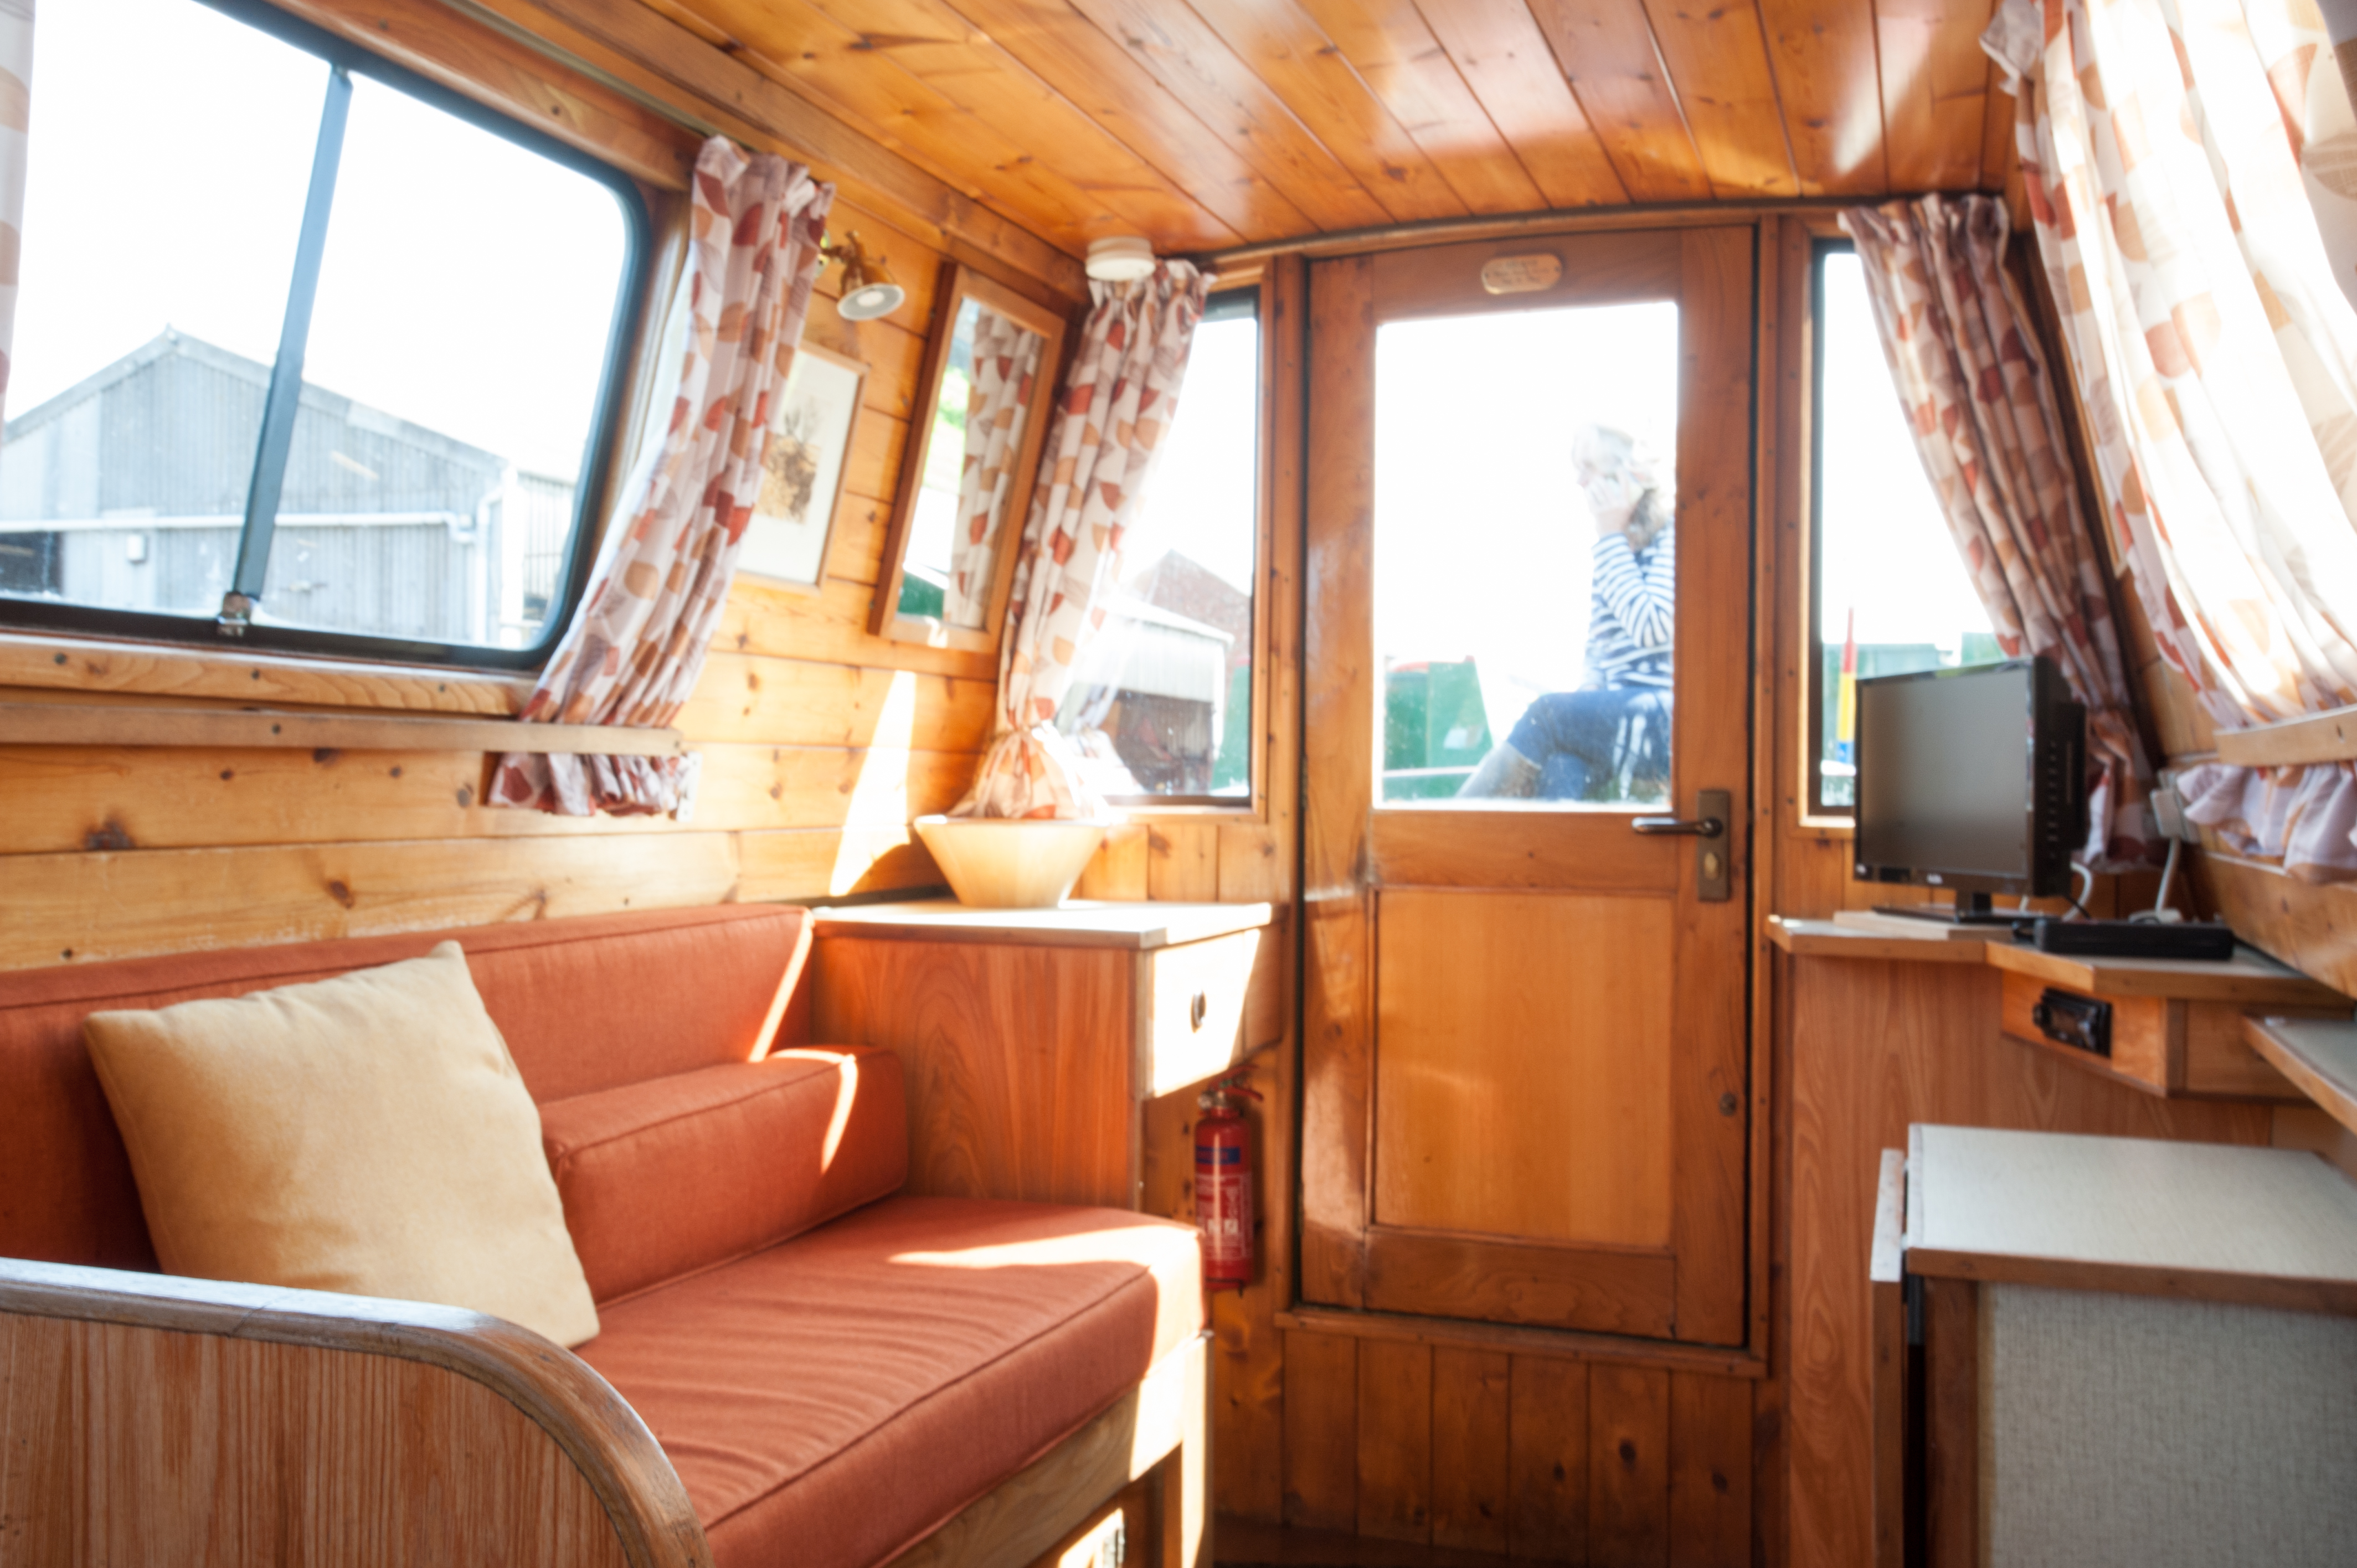 Bright interior of Union Canal Carriers narrowboat 'Selene'